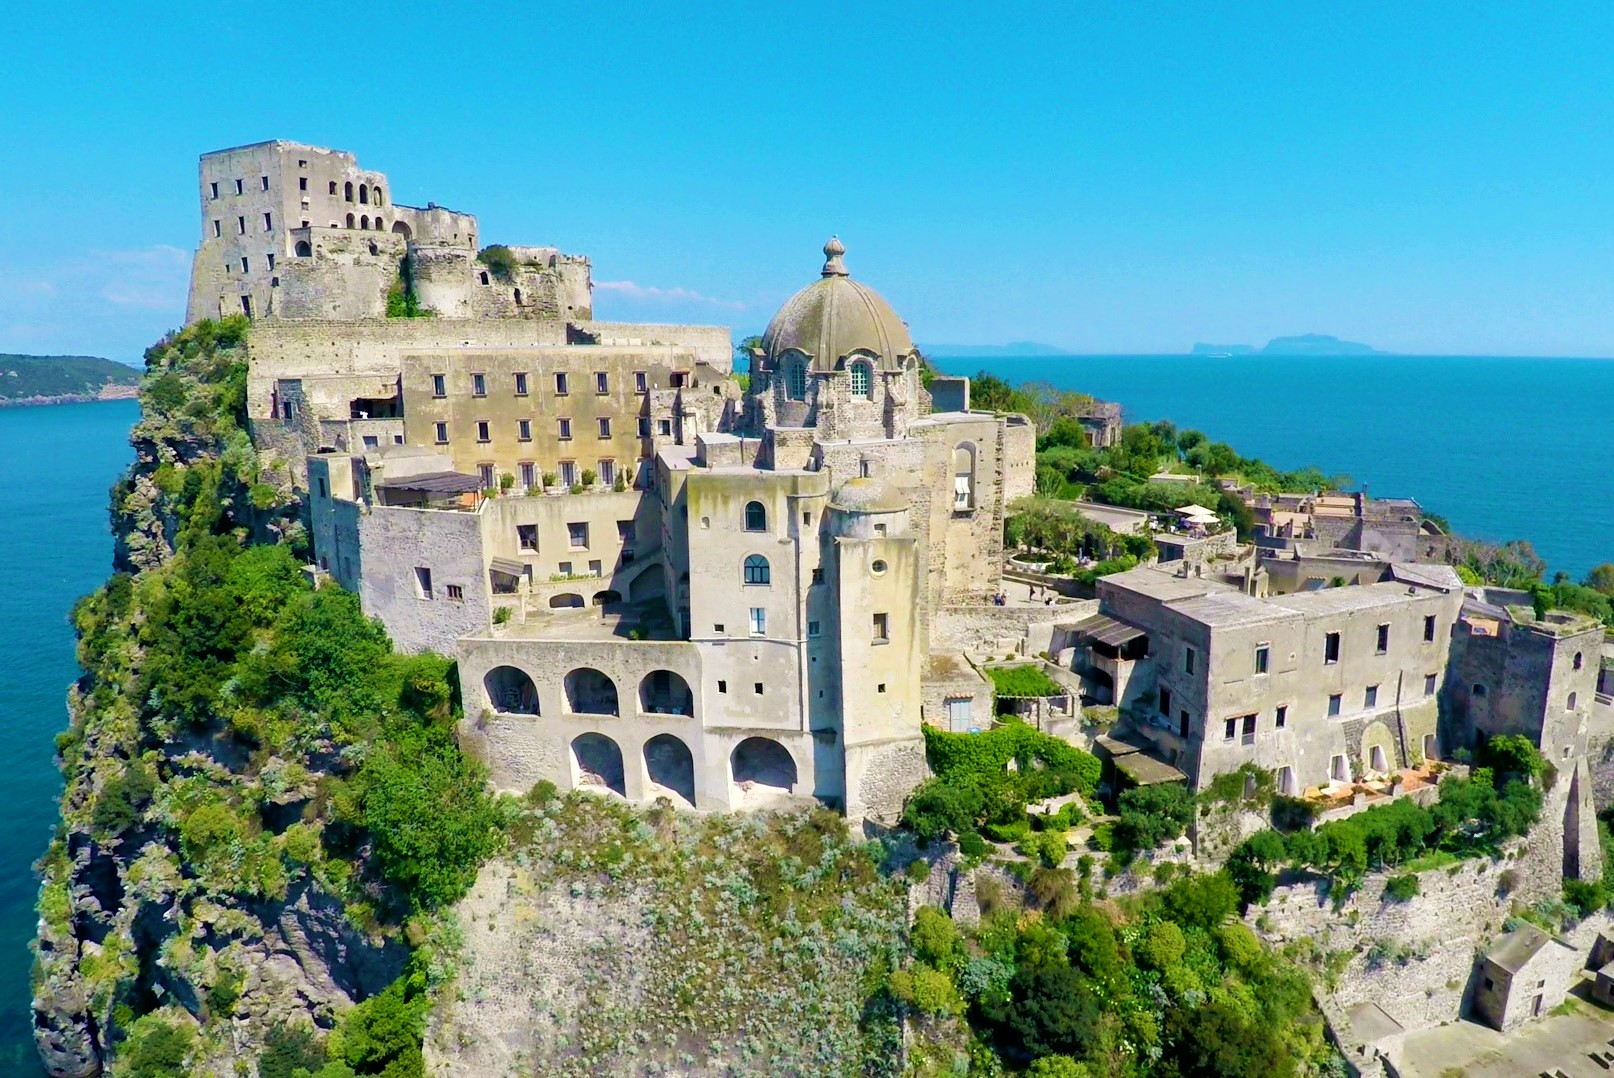 The Most Beautiful Islands in Italy - Ischia